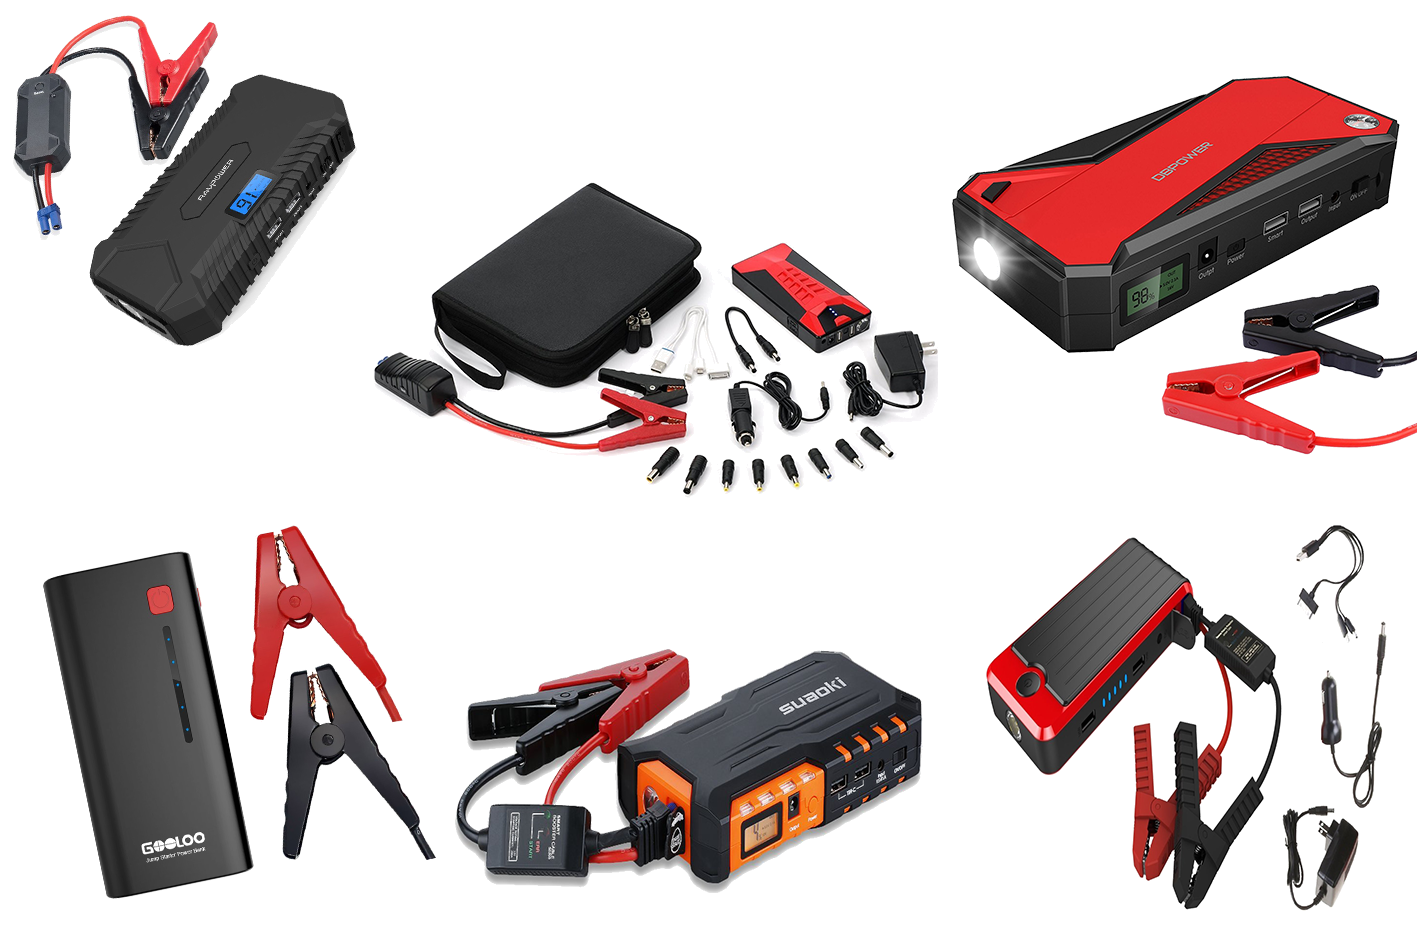 Top 8 Lithium Ion Jump Starters Reviewed Best Portable Boost For